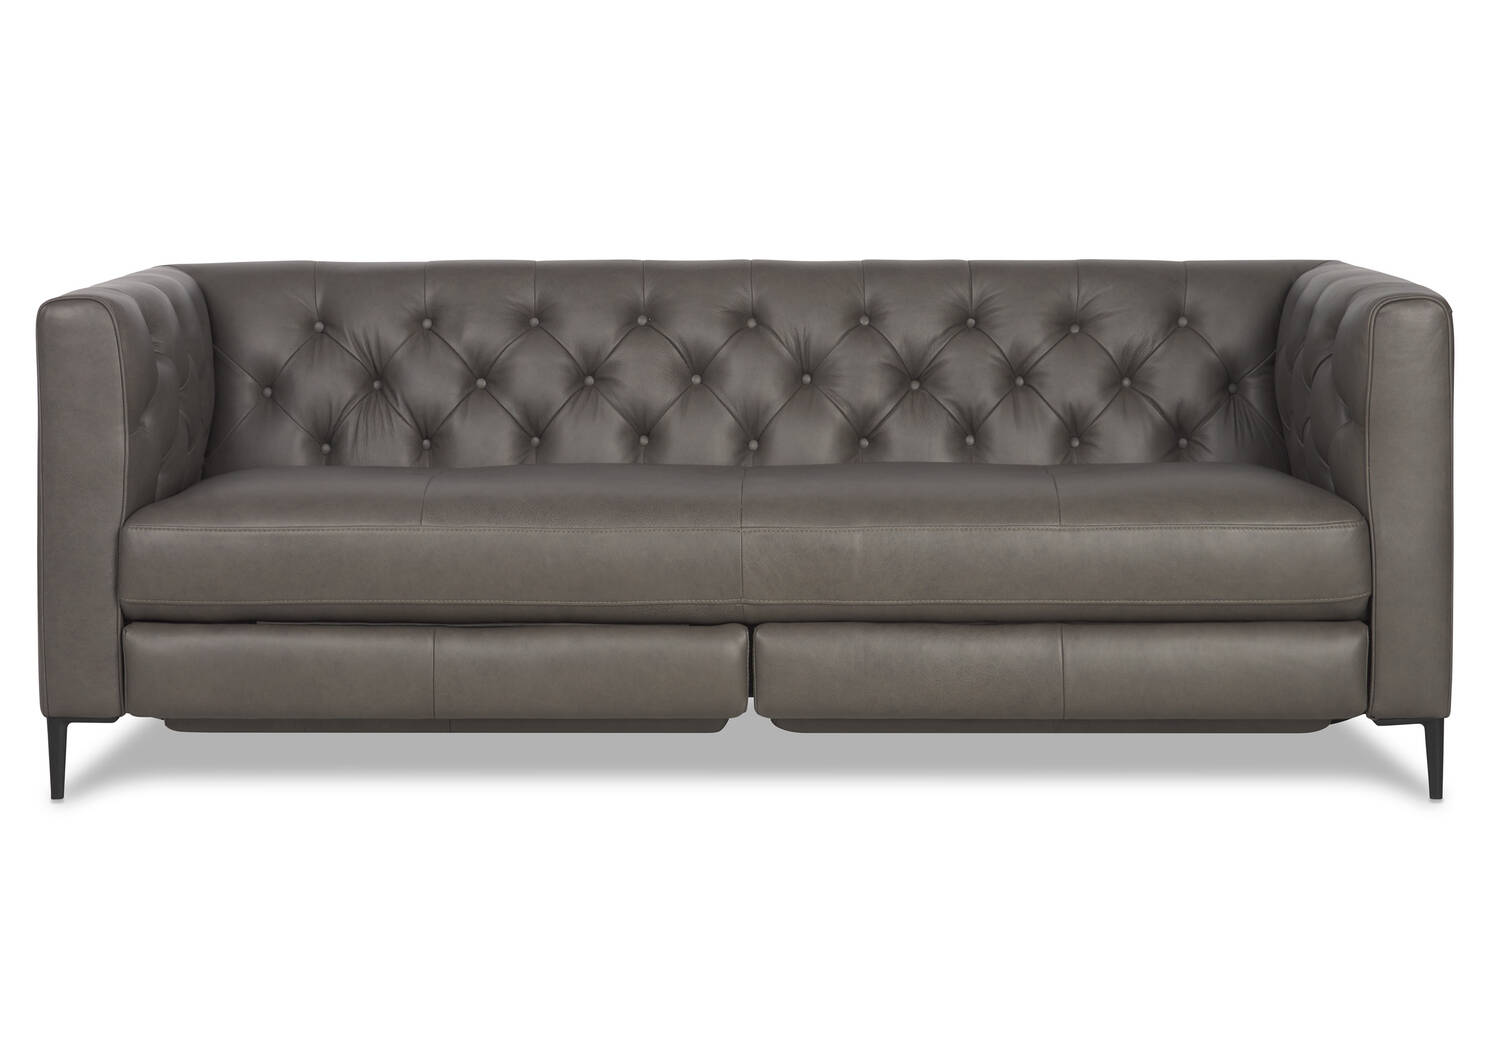 Mckay Leather Relaxer Sofa -Ashby Stone